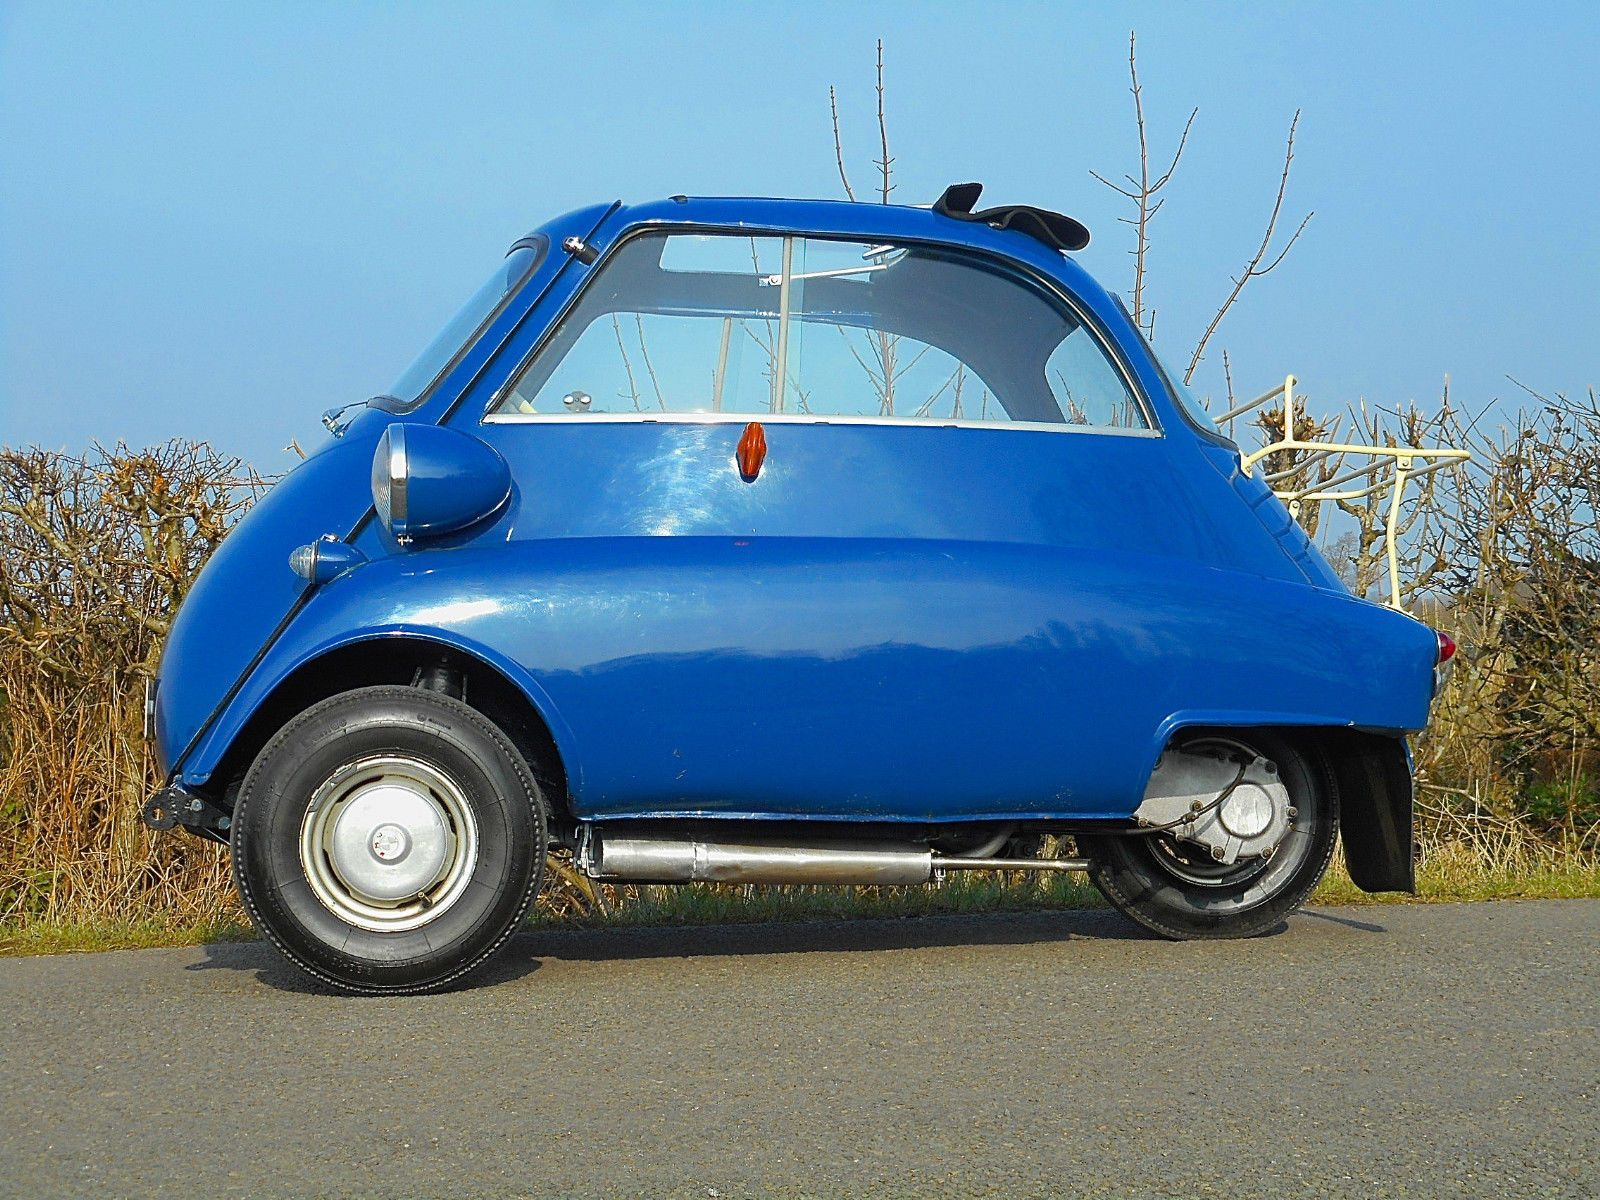 1966 Bmw Isetta 300cc Bubble Car B Weird Vehicles 2 Bmw Isetta